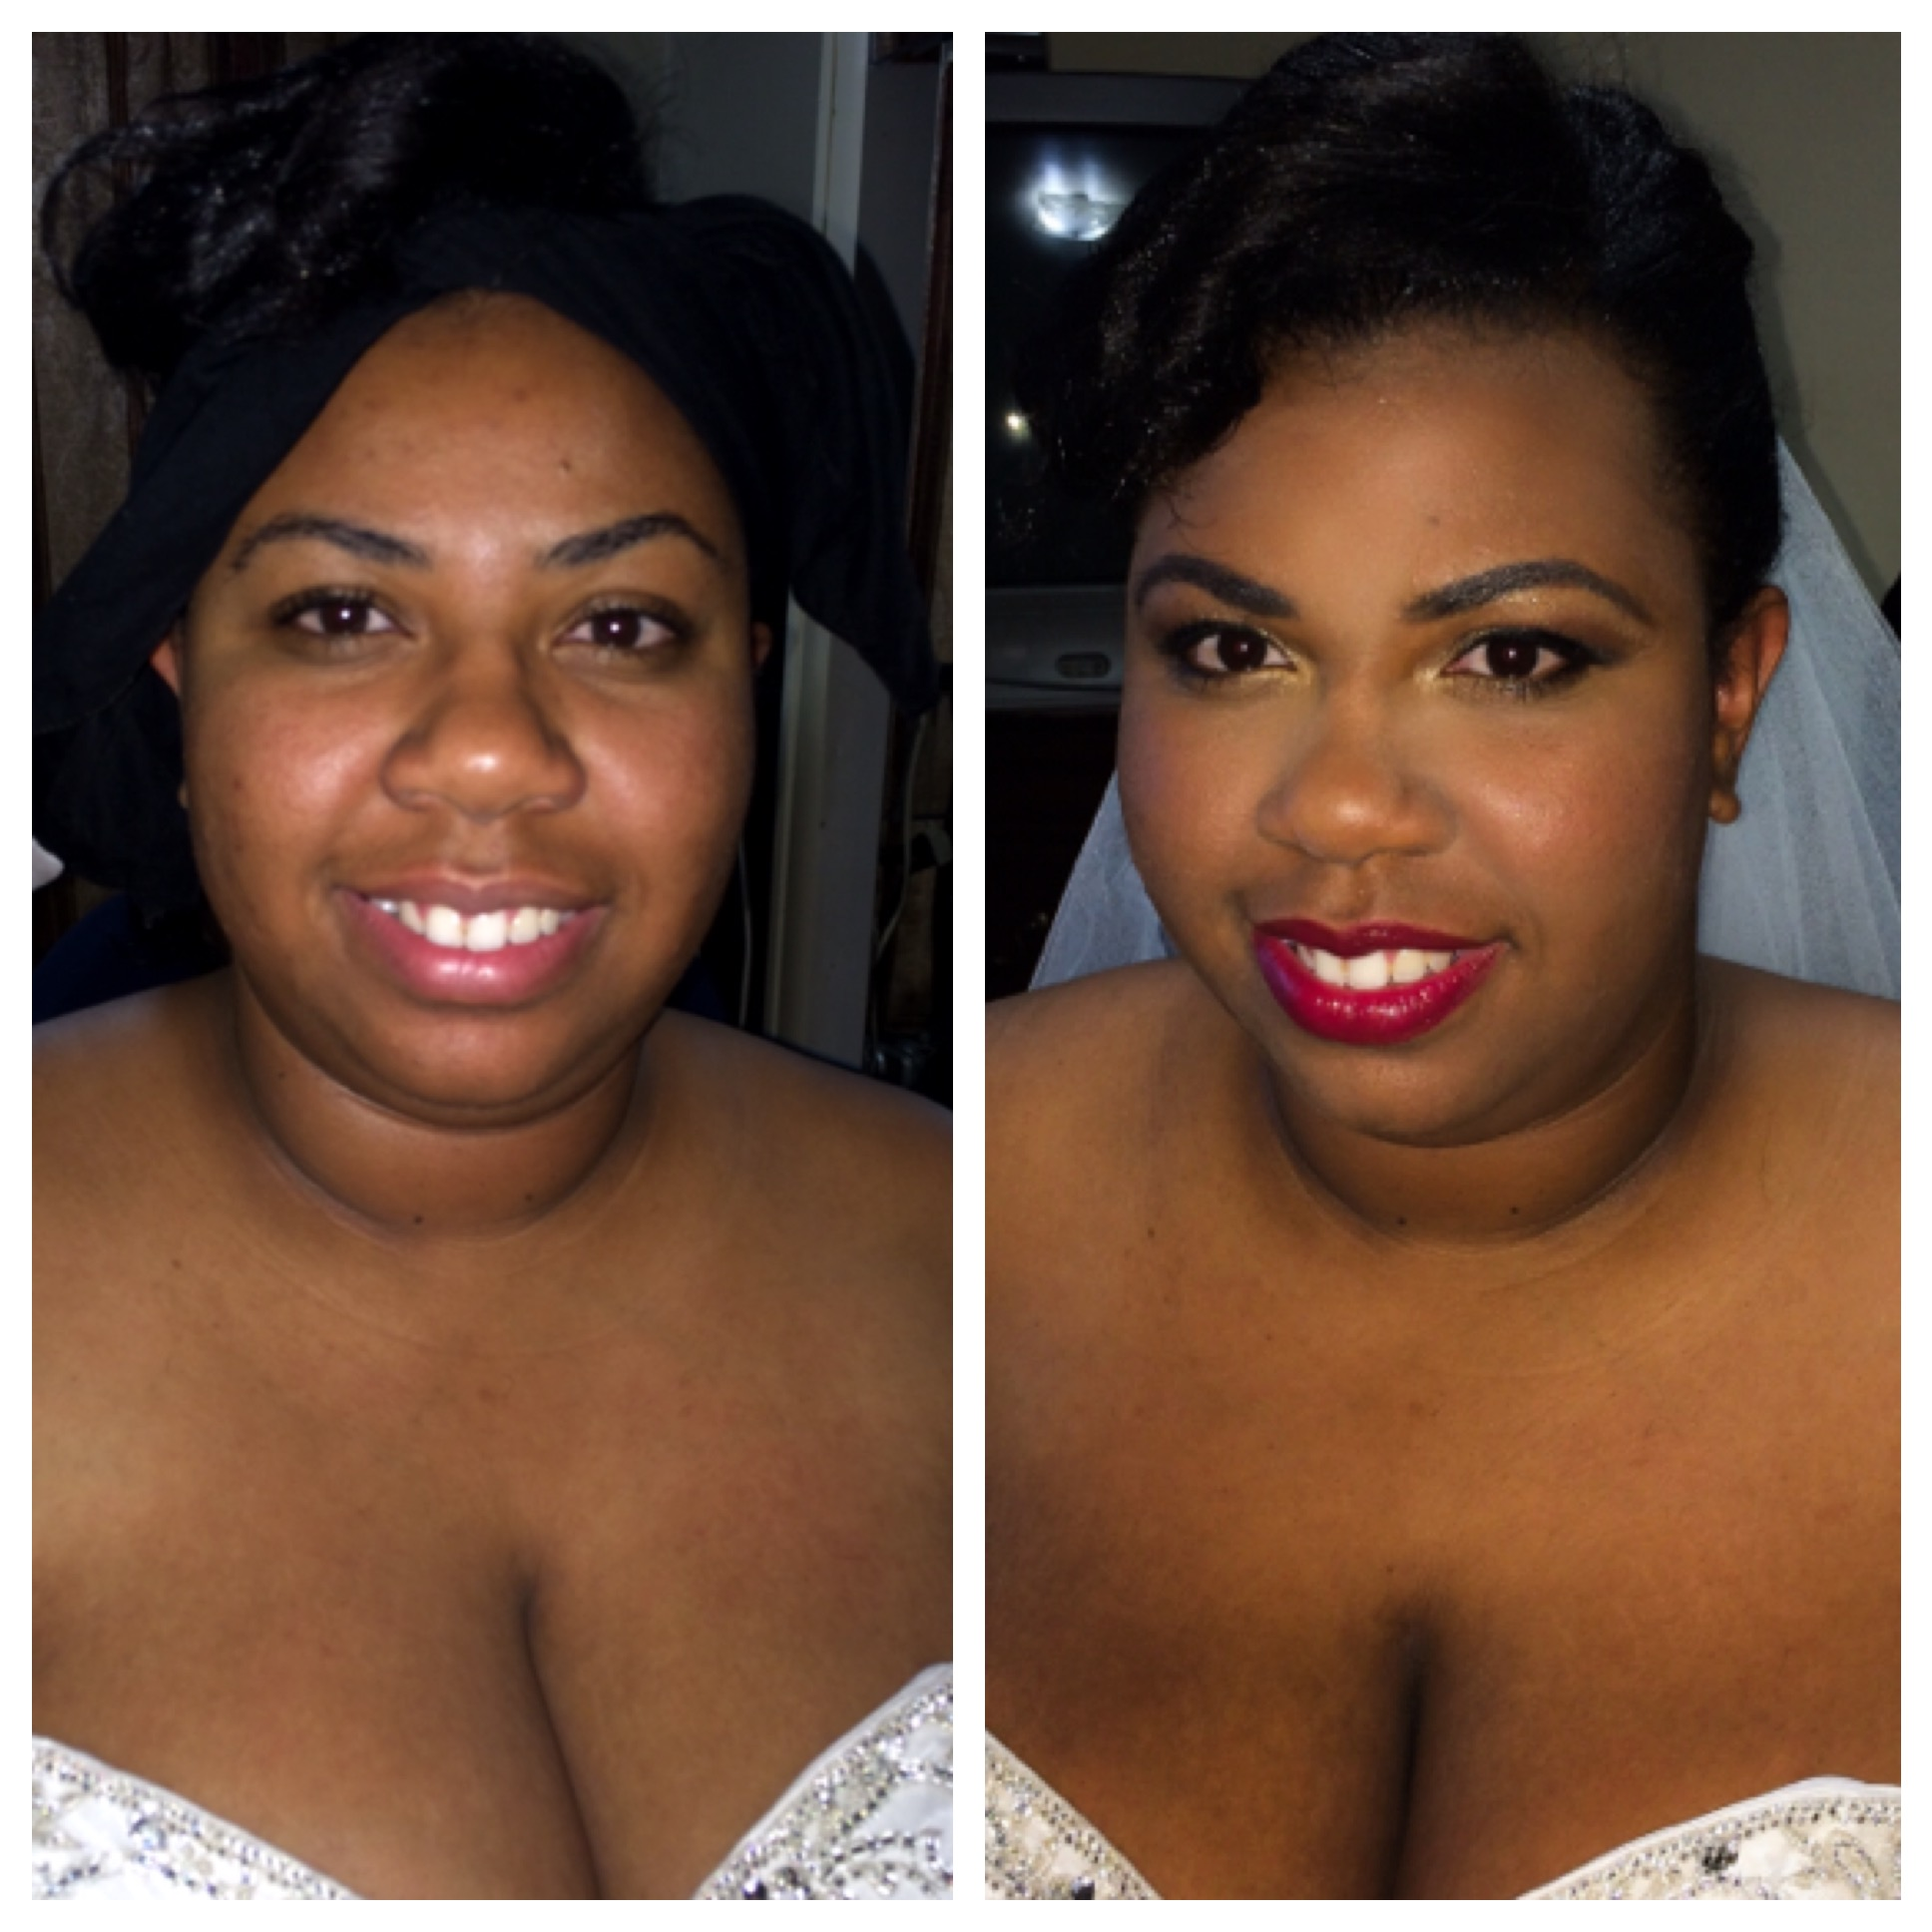 Bridal Makeup Before And After Makeup By Jeannine Summerville - Before and after makeup photos